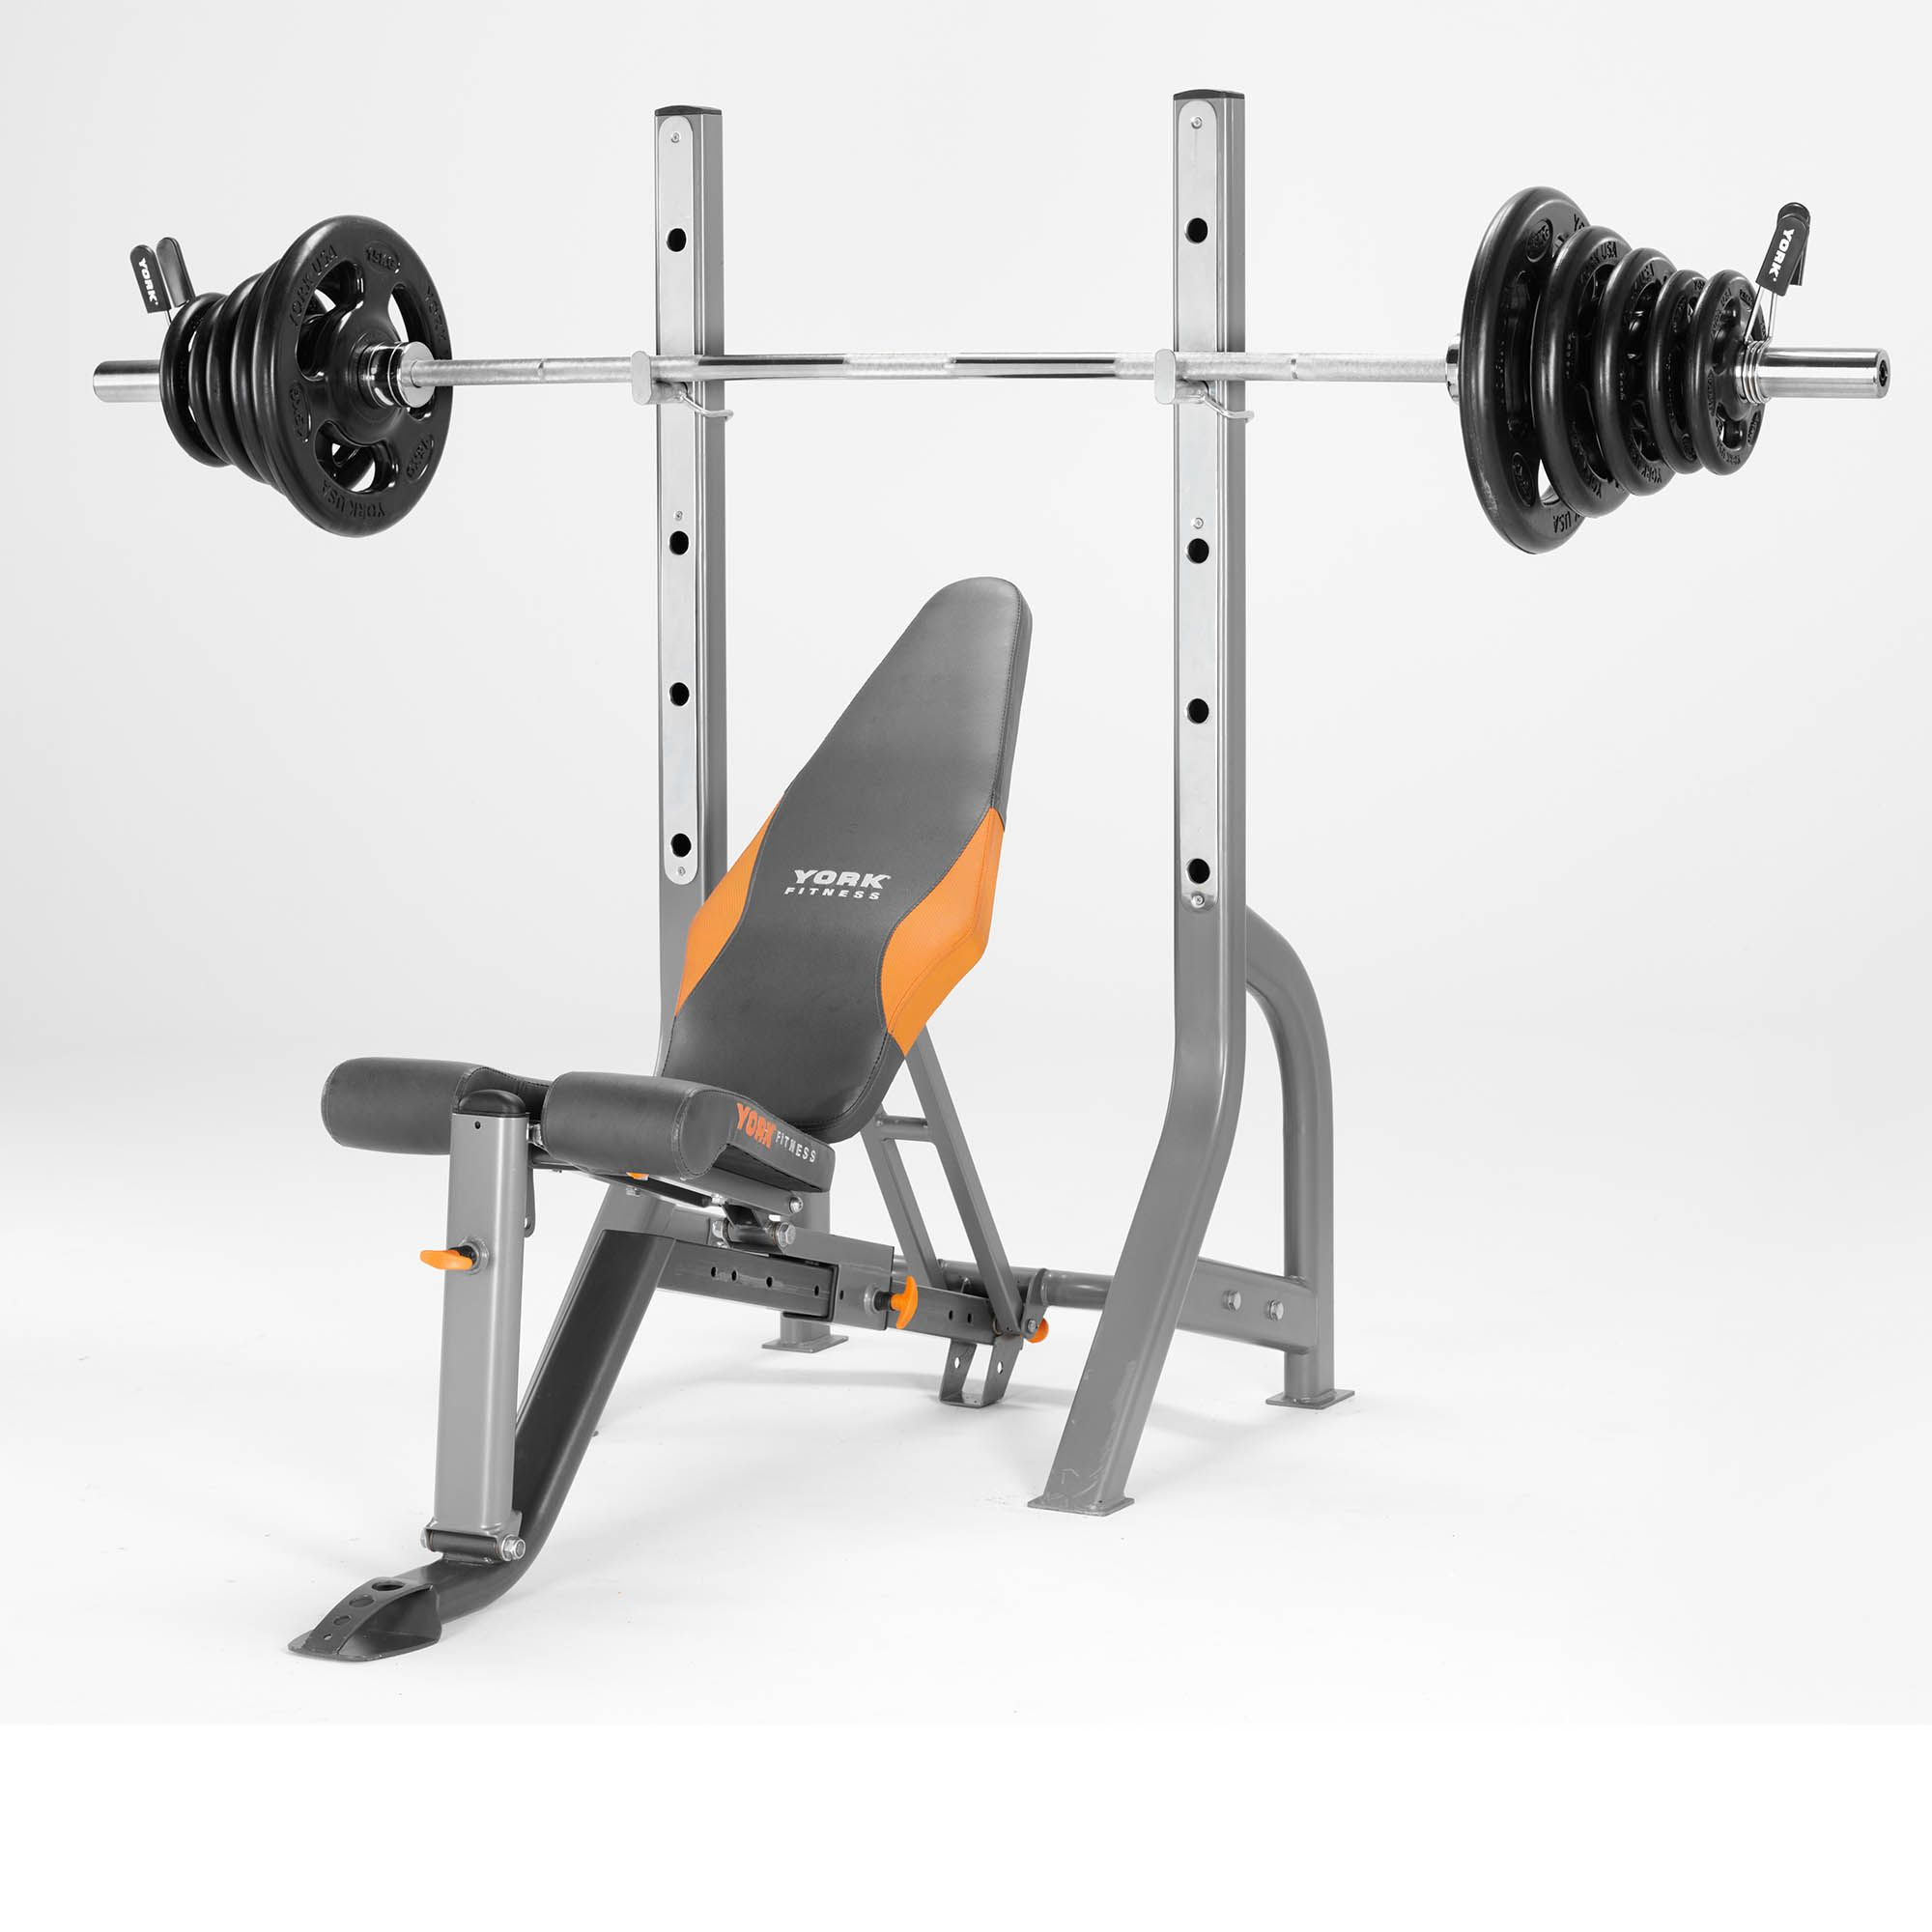 York weight bench assembly instructions